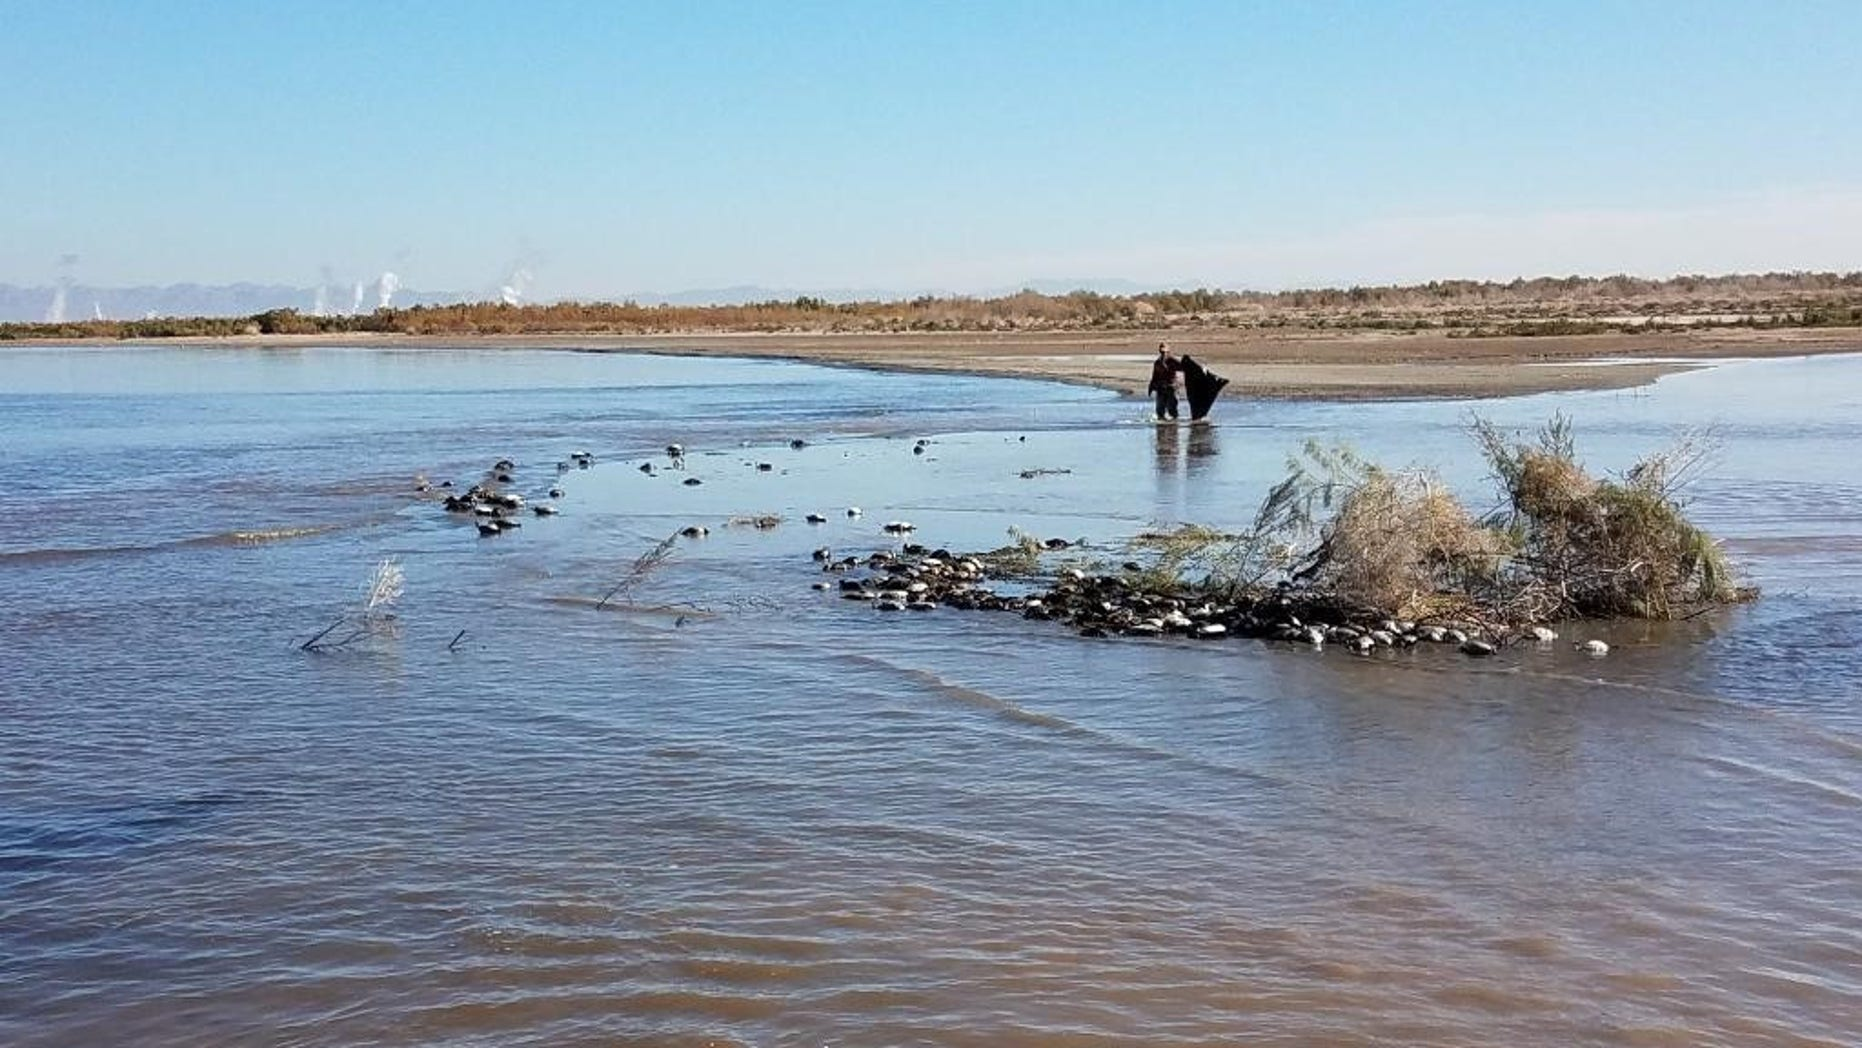 California wildlife officials said thousands of water birds died of an avian cholera outbreak at the Salton Sea between Jan. 8-17